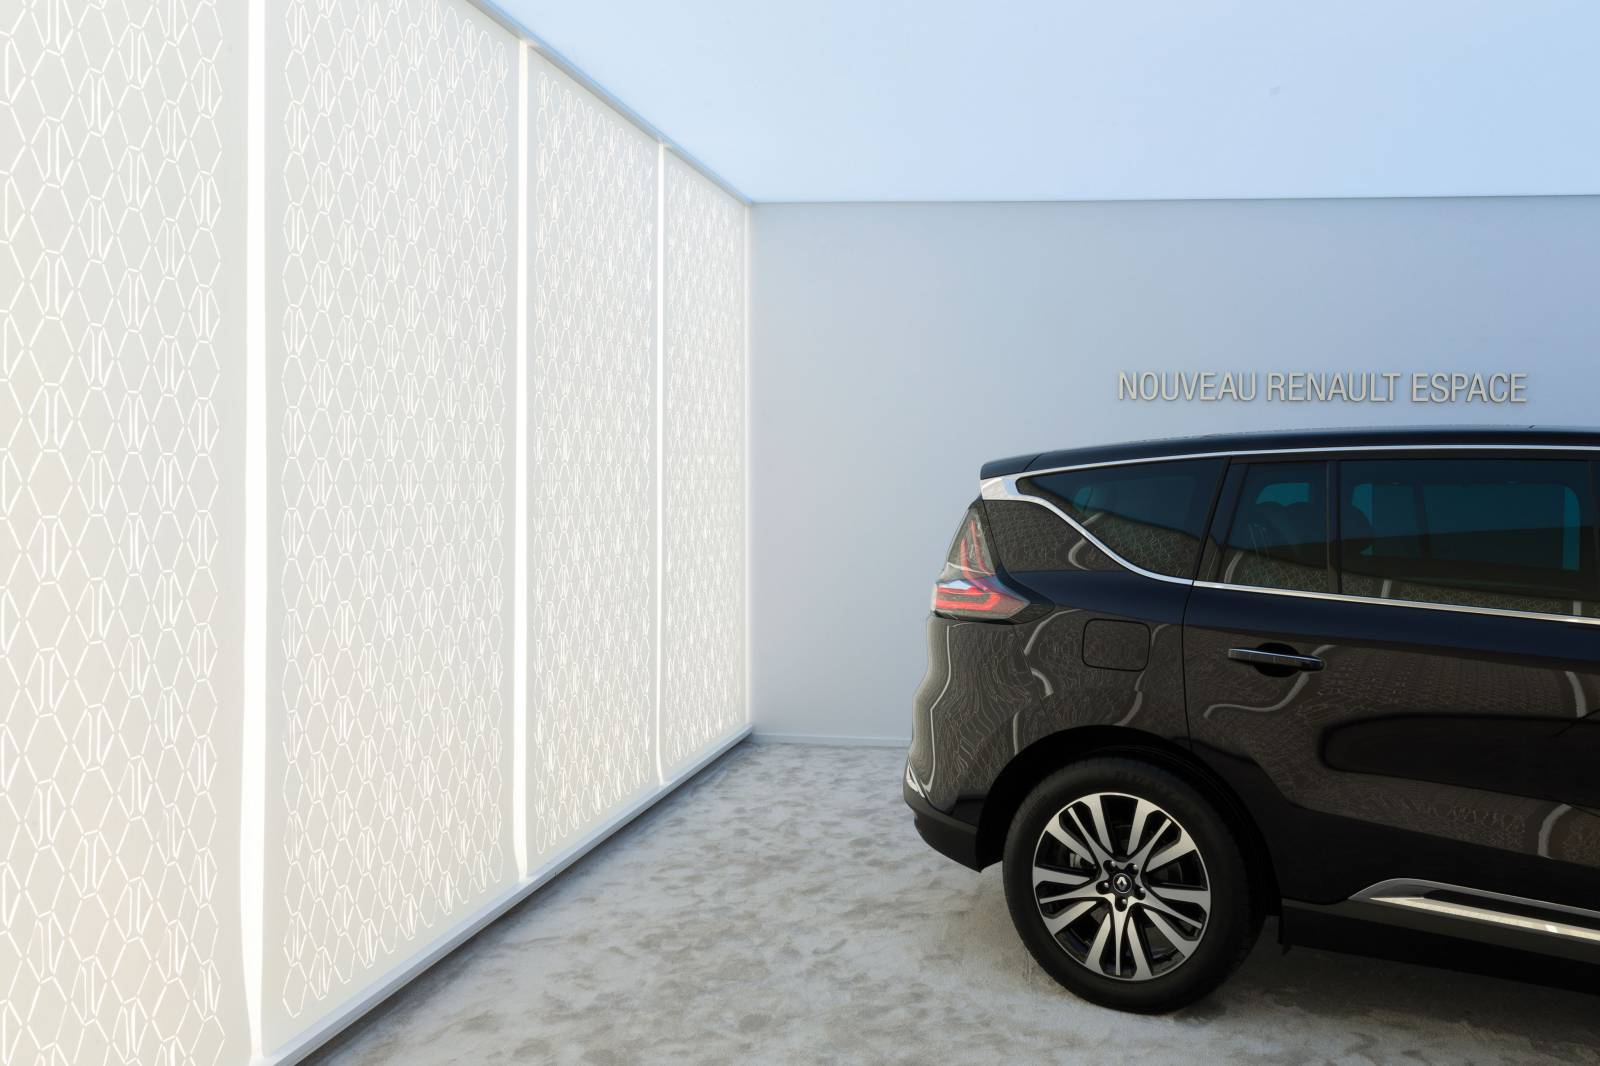 5 - Space dividers for the brand Initiale Paris of the Renault group